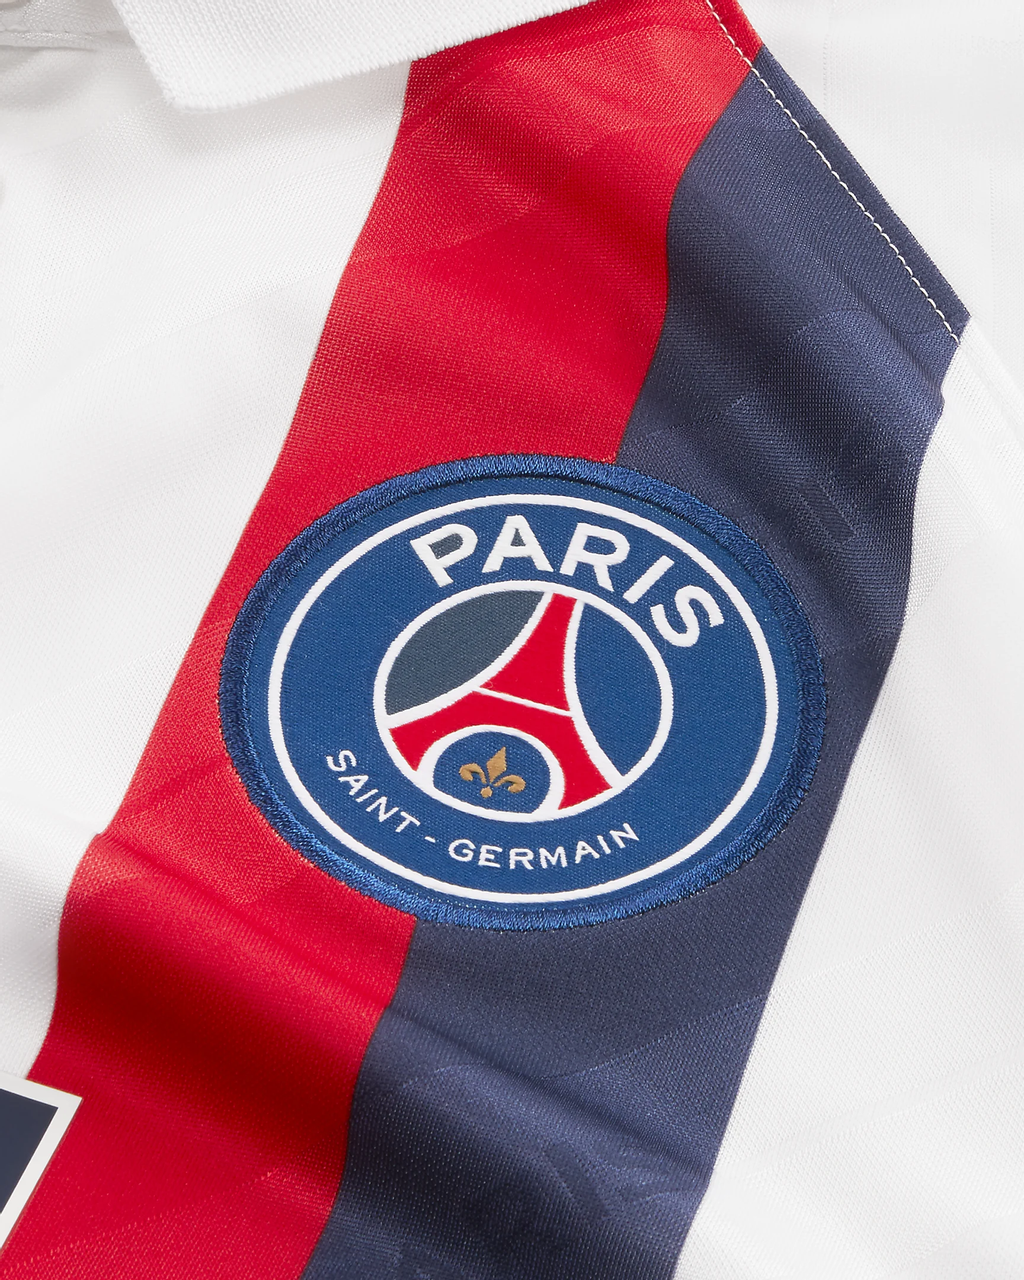 PSG3RD3.png